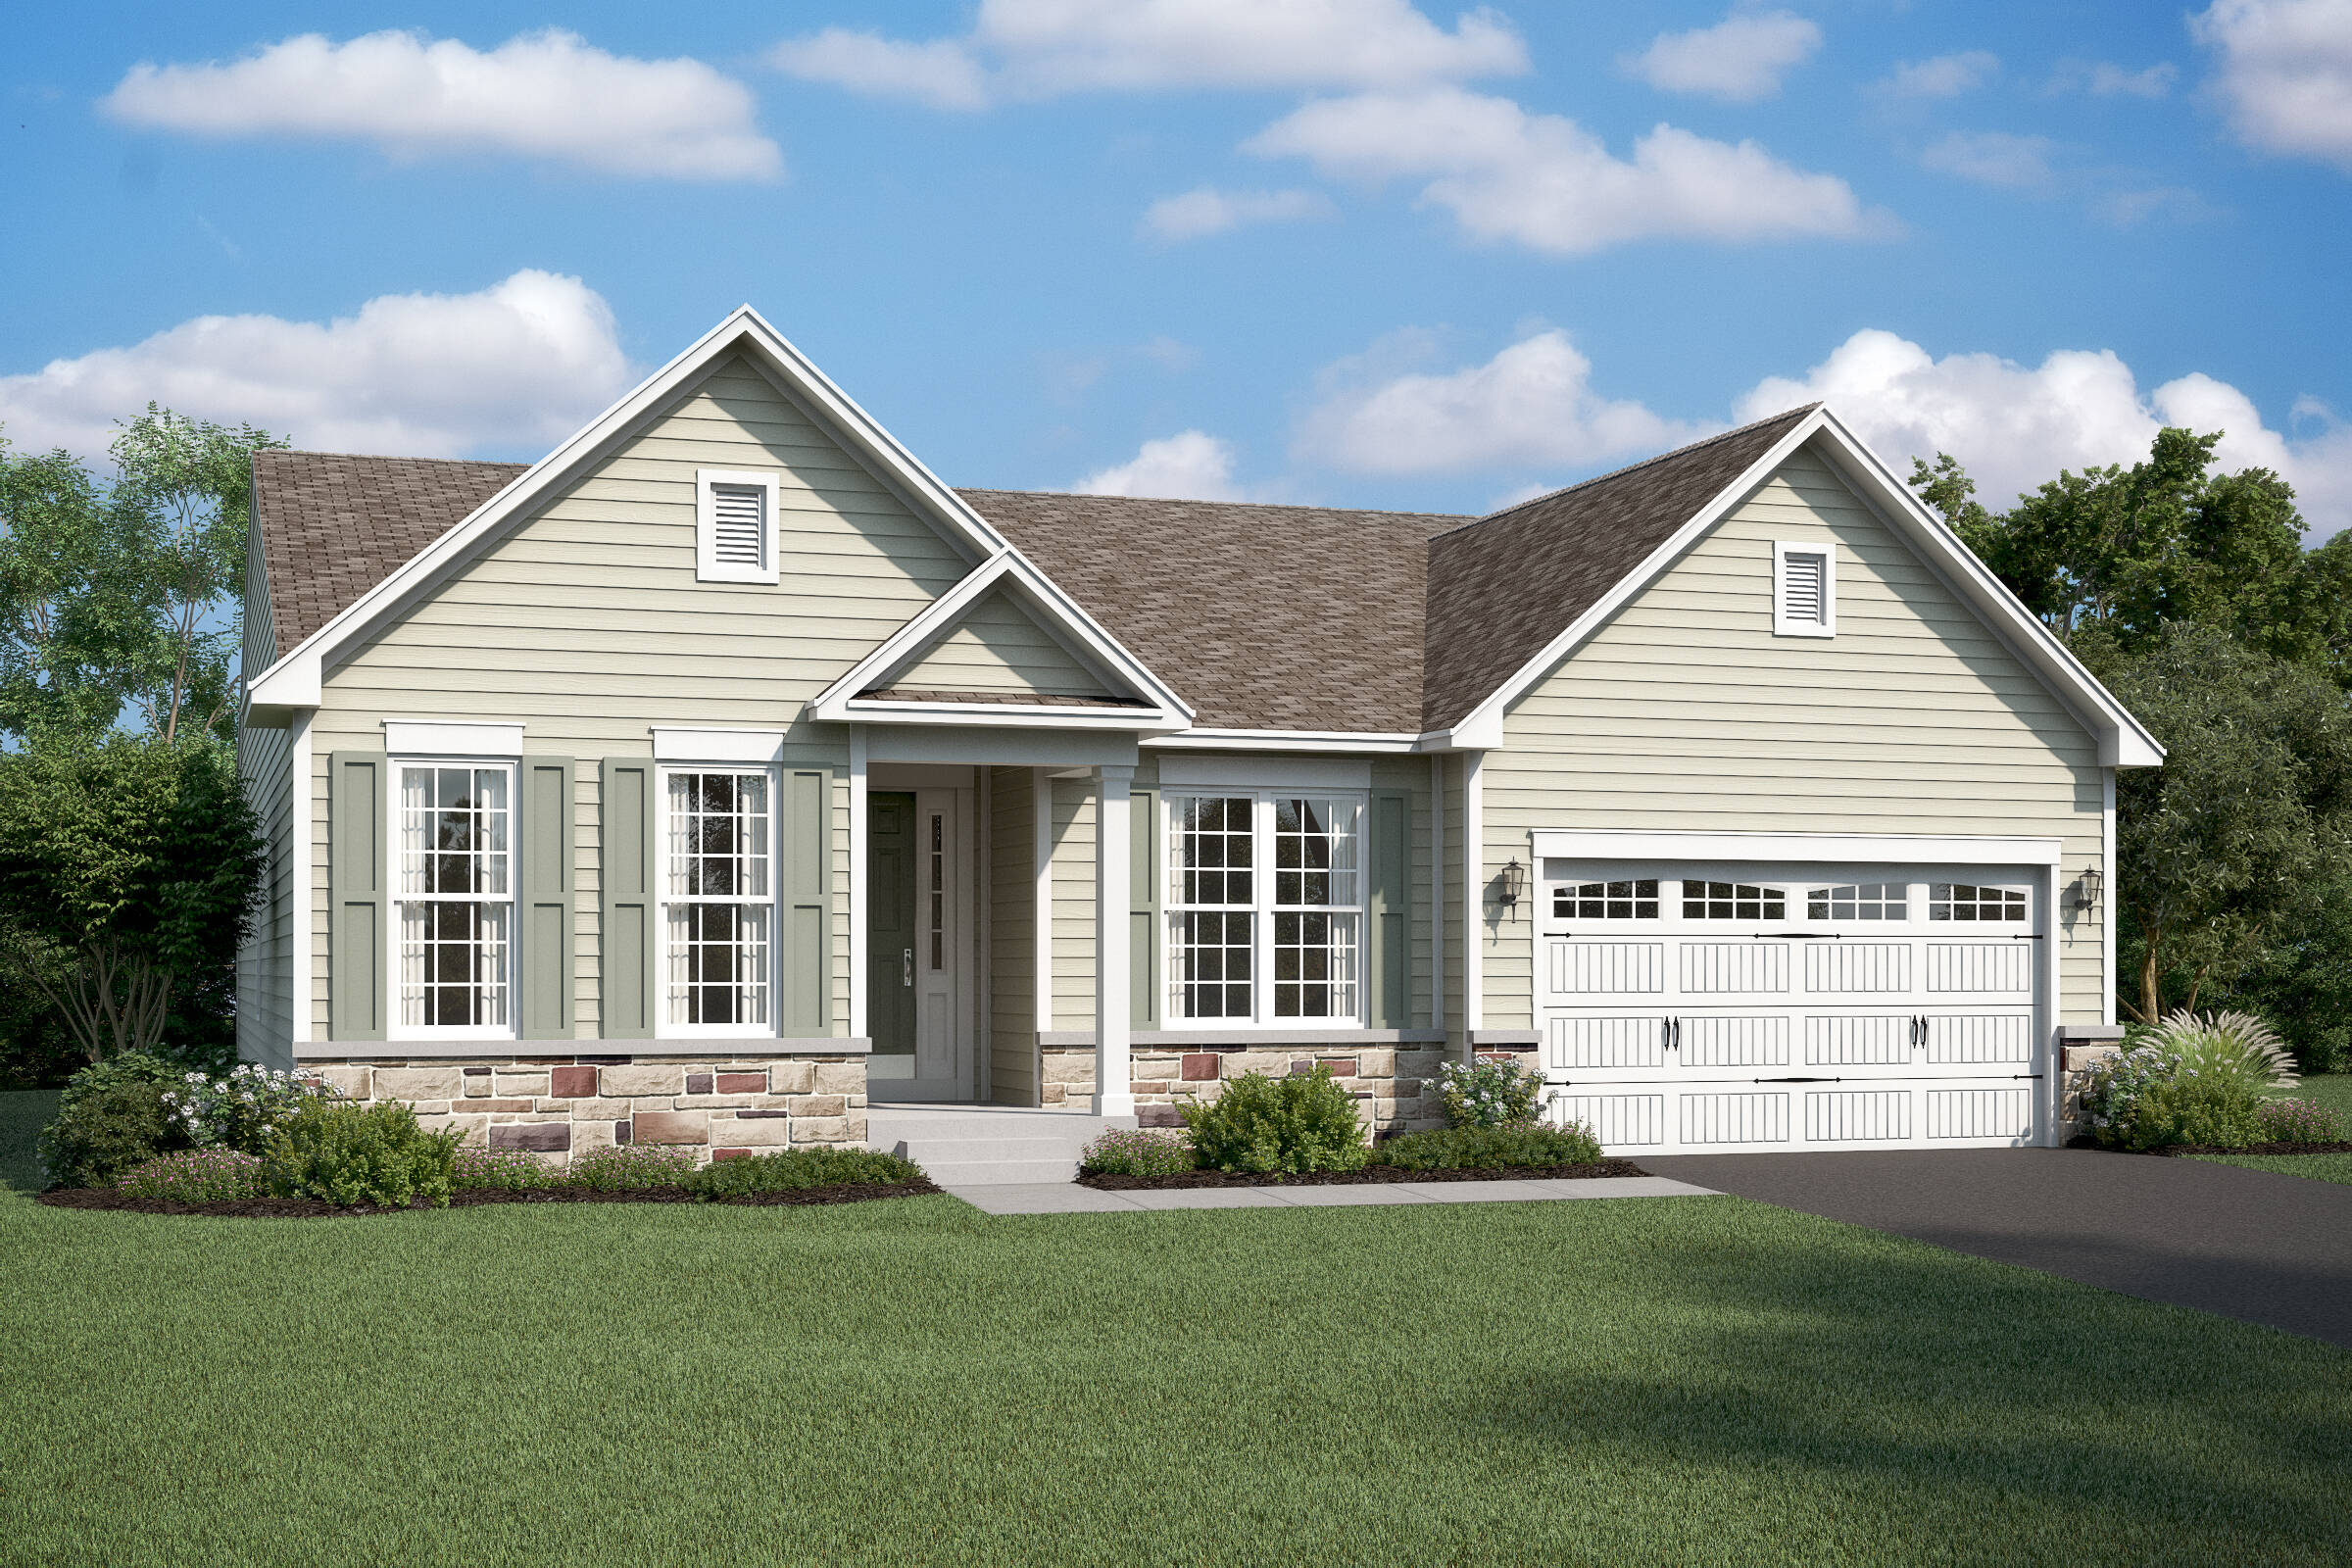 rockford bt new homes at red mill pond in delaware